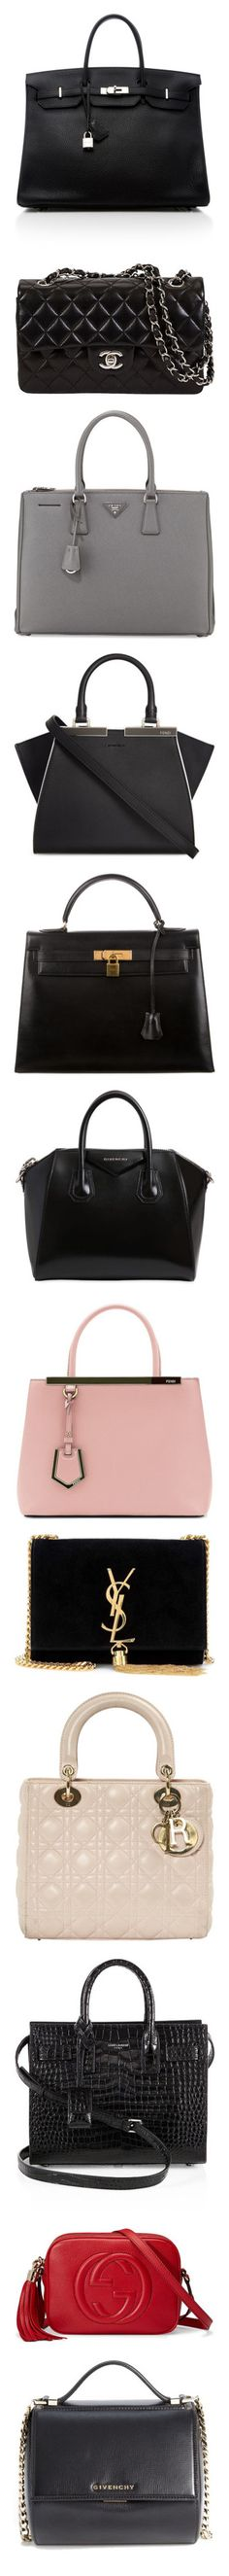 """Wishlist (bags)"" by itsmeambra ❤ liked on Polyvore featuring bags, handbags, black, real leather bags, leather purses, hermes handbags, genuine leather handbags, leather bags, home and home improvement"